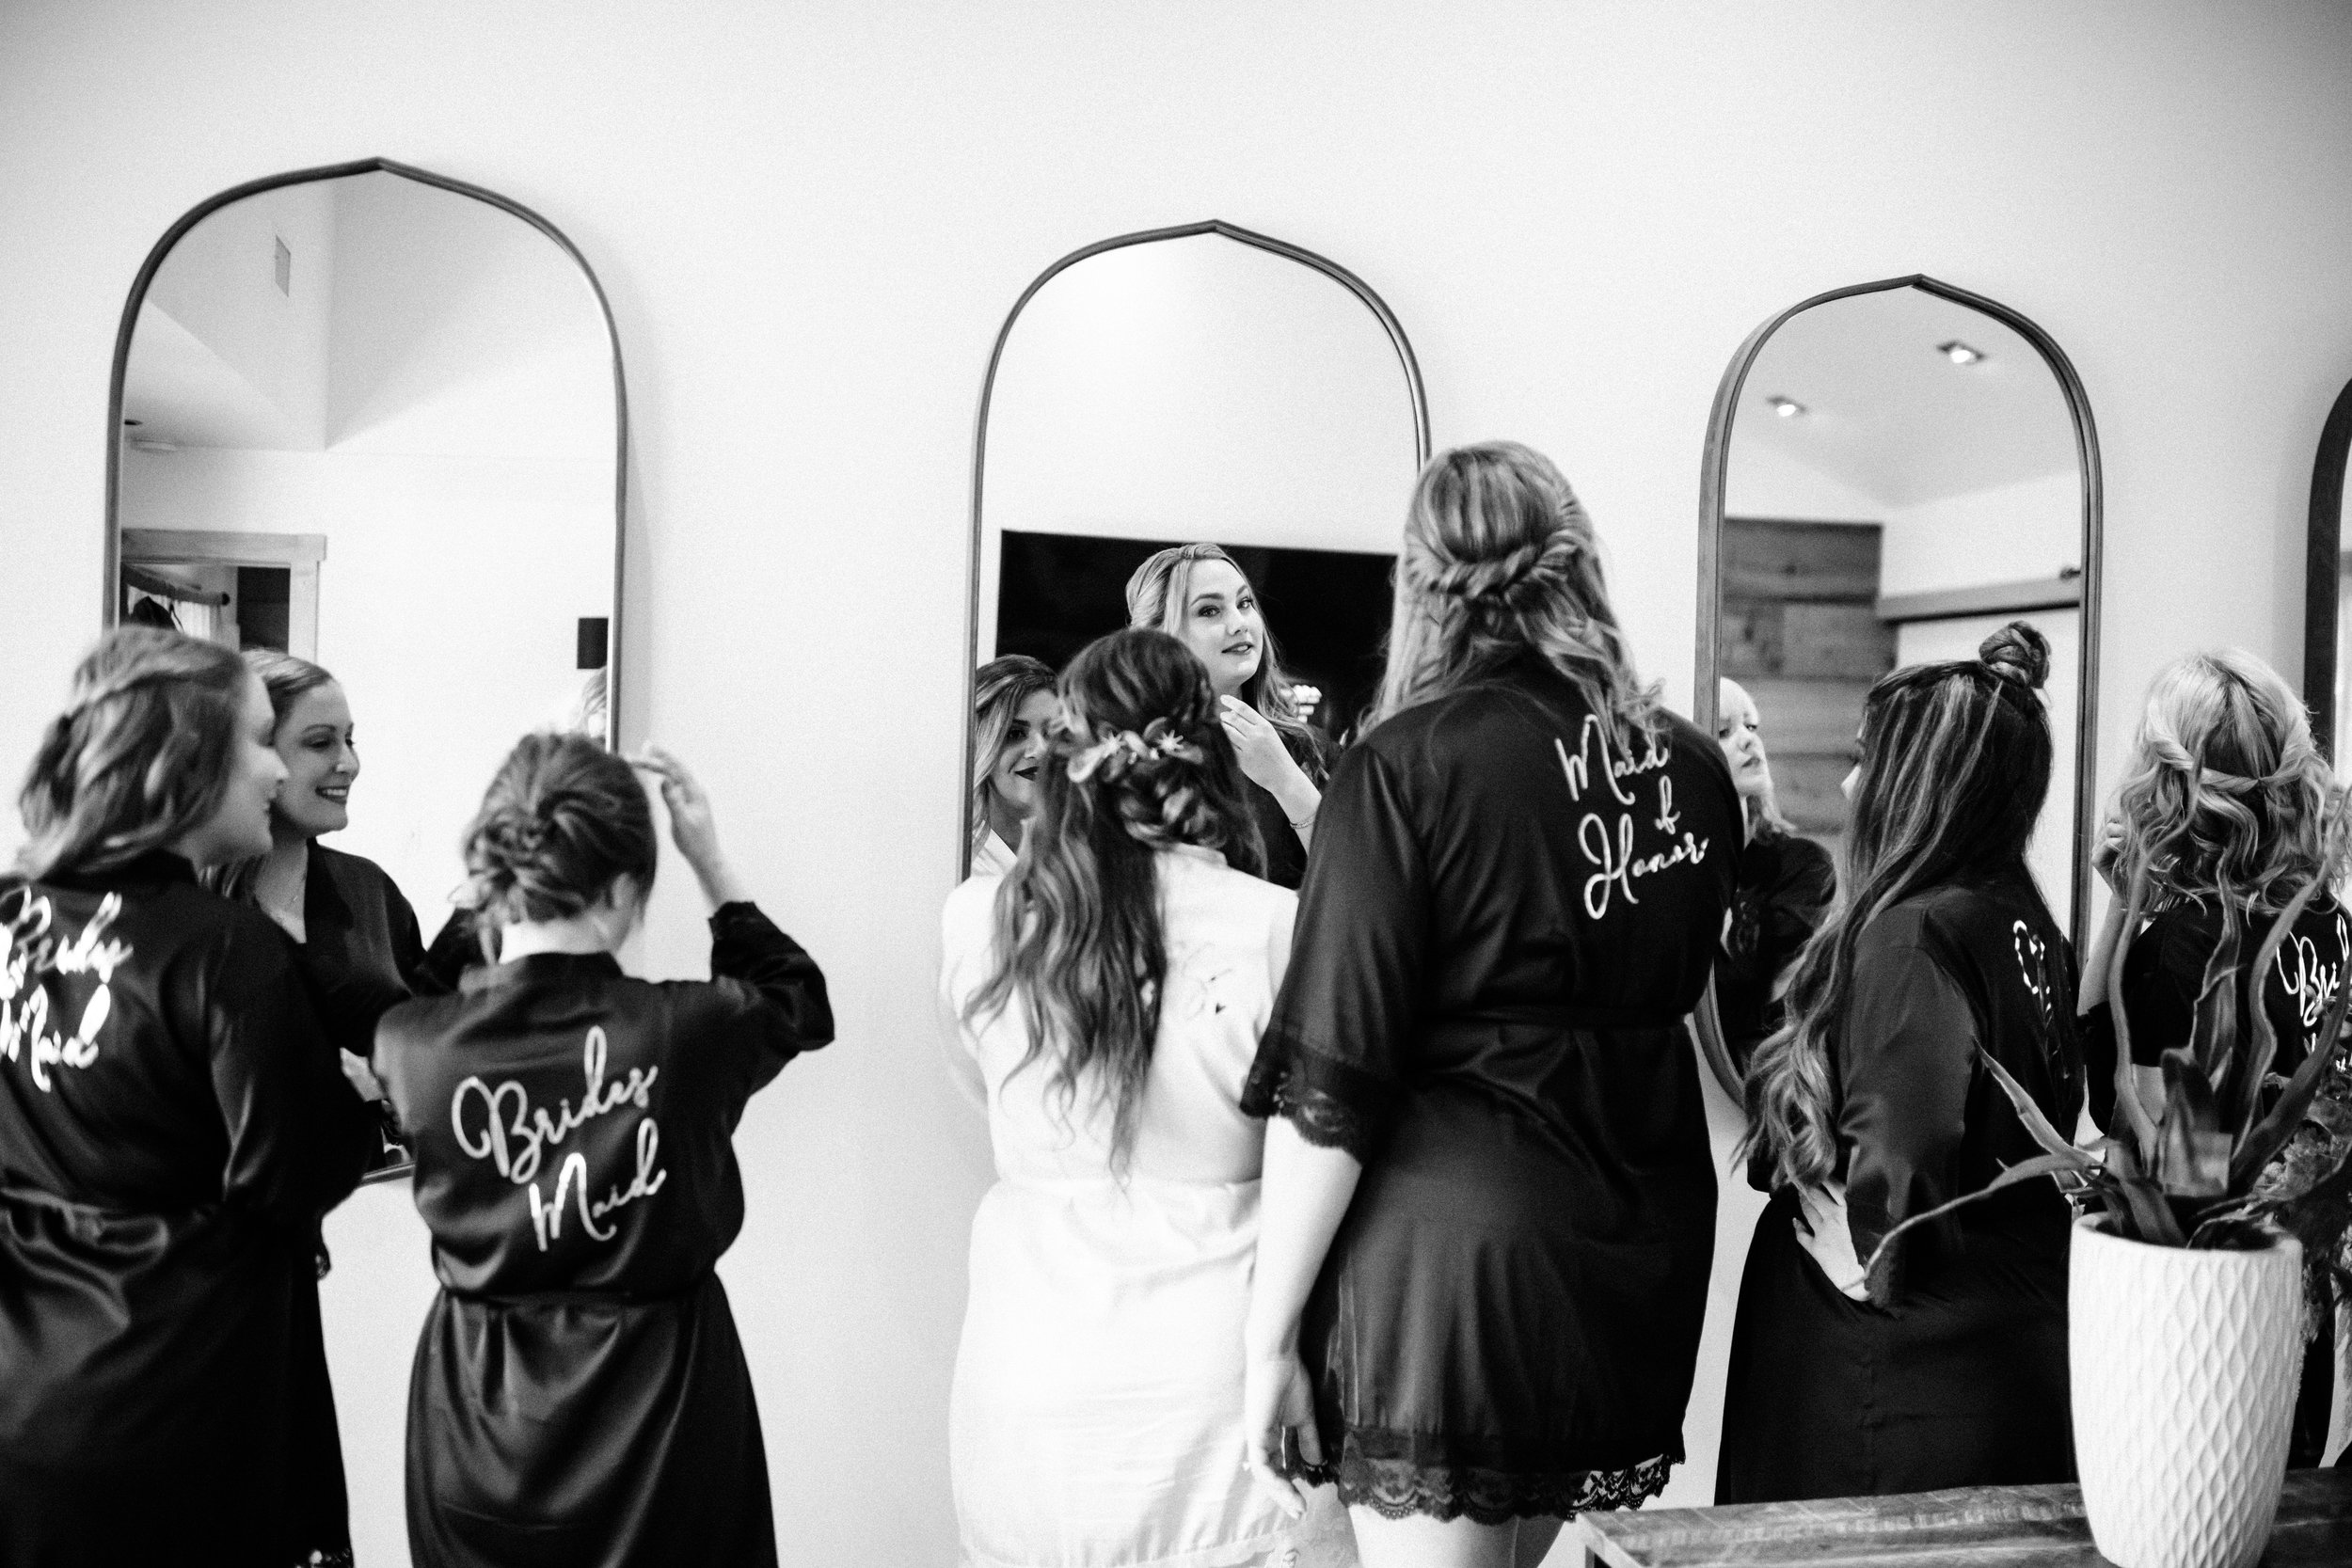 bay area nontraditional wedding photographer southern california boho wedding love light magic san francisco oakland northern california-101.jpg